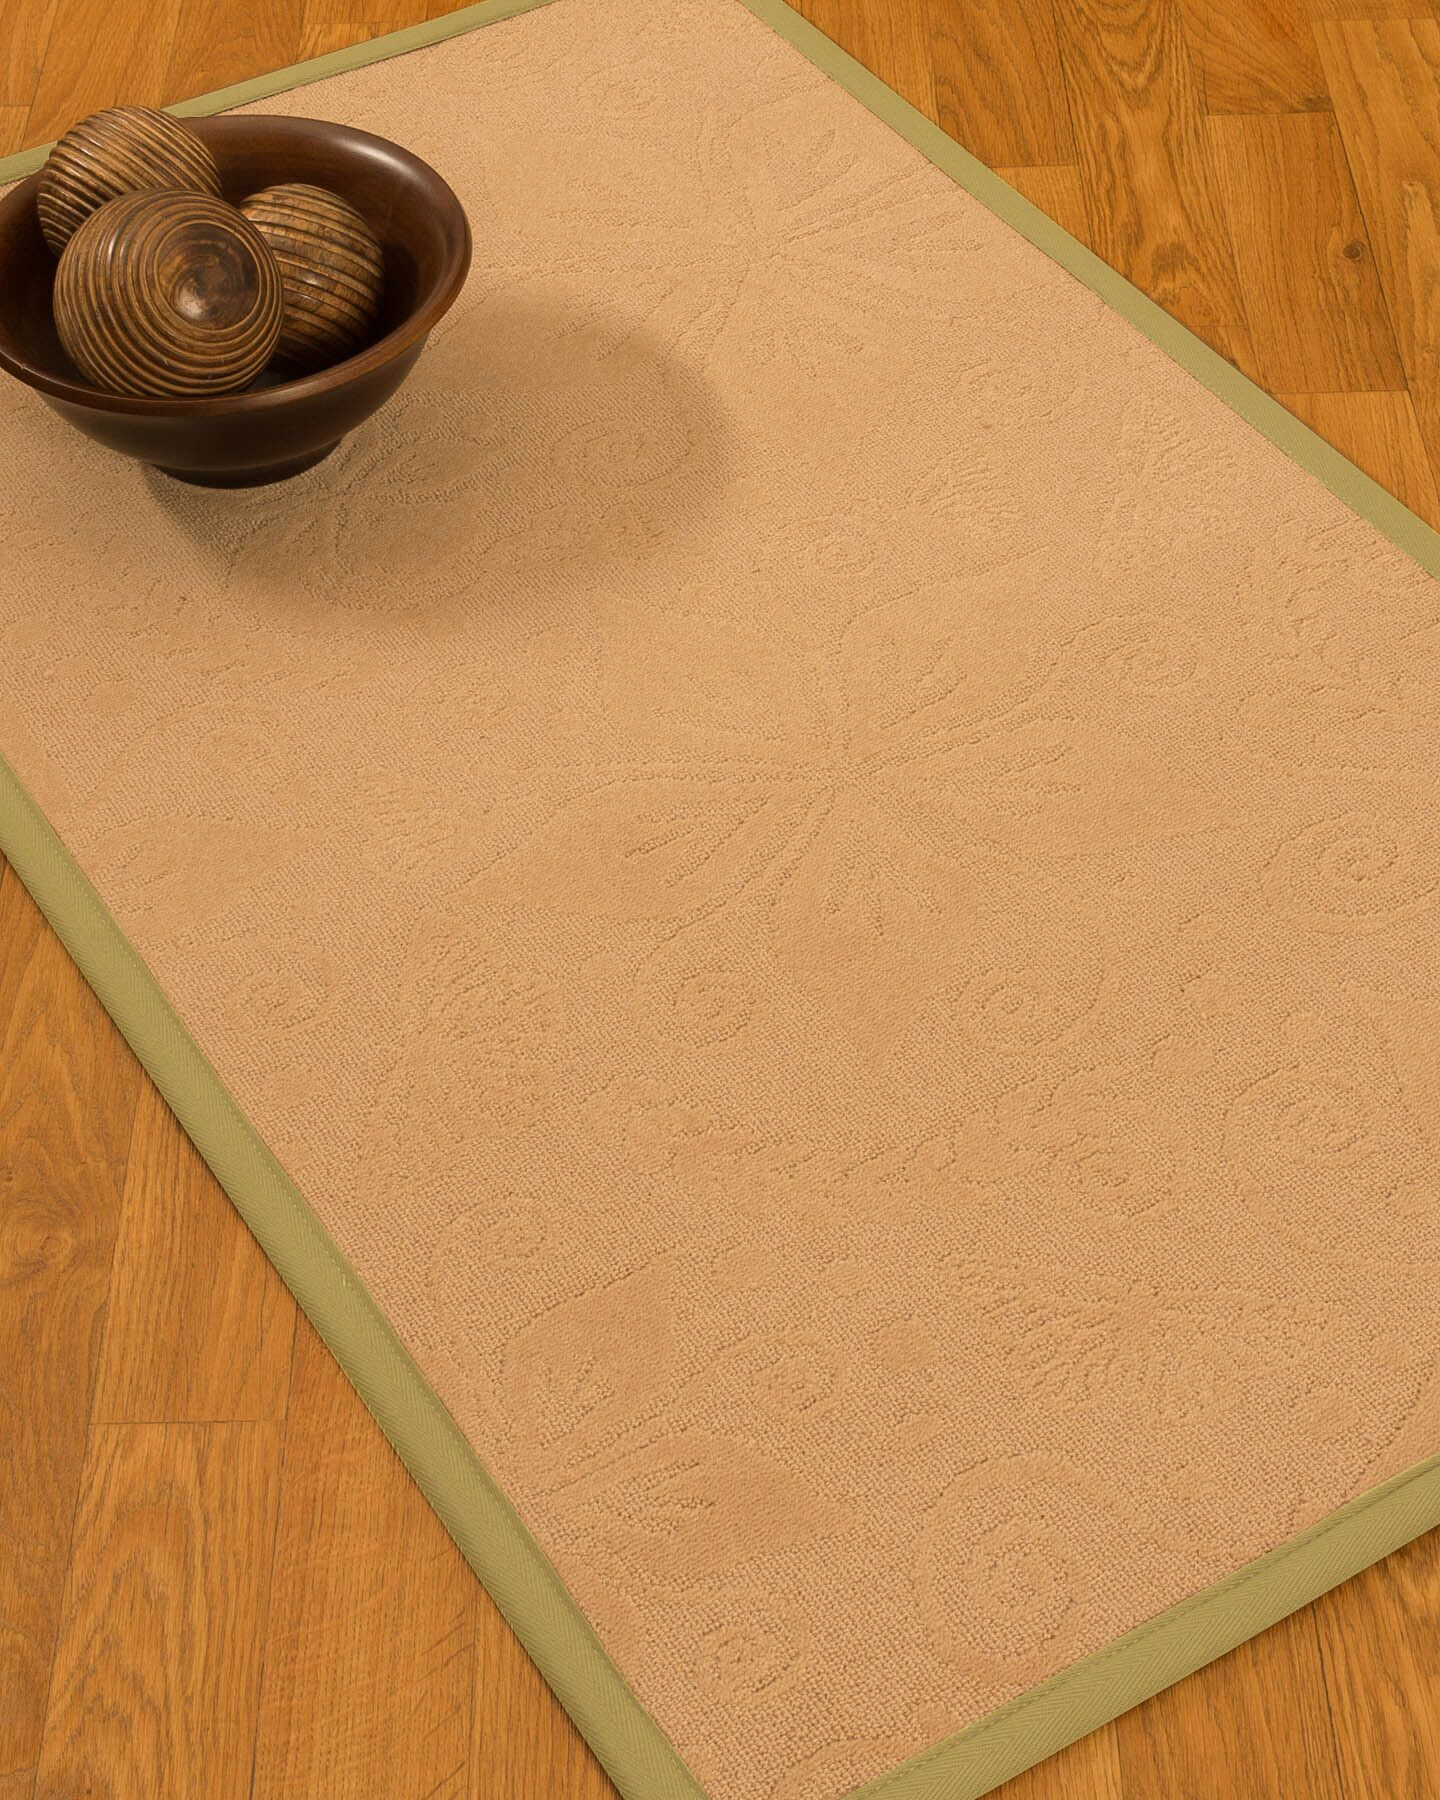 Vanmeter Border Hand-Woven Wool Beige/Green Area Rug Rug Size: Rectangle 9' x 12', Rug Pad Included: Yes